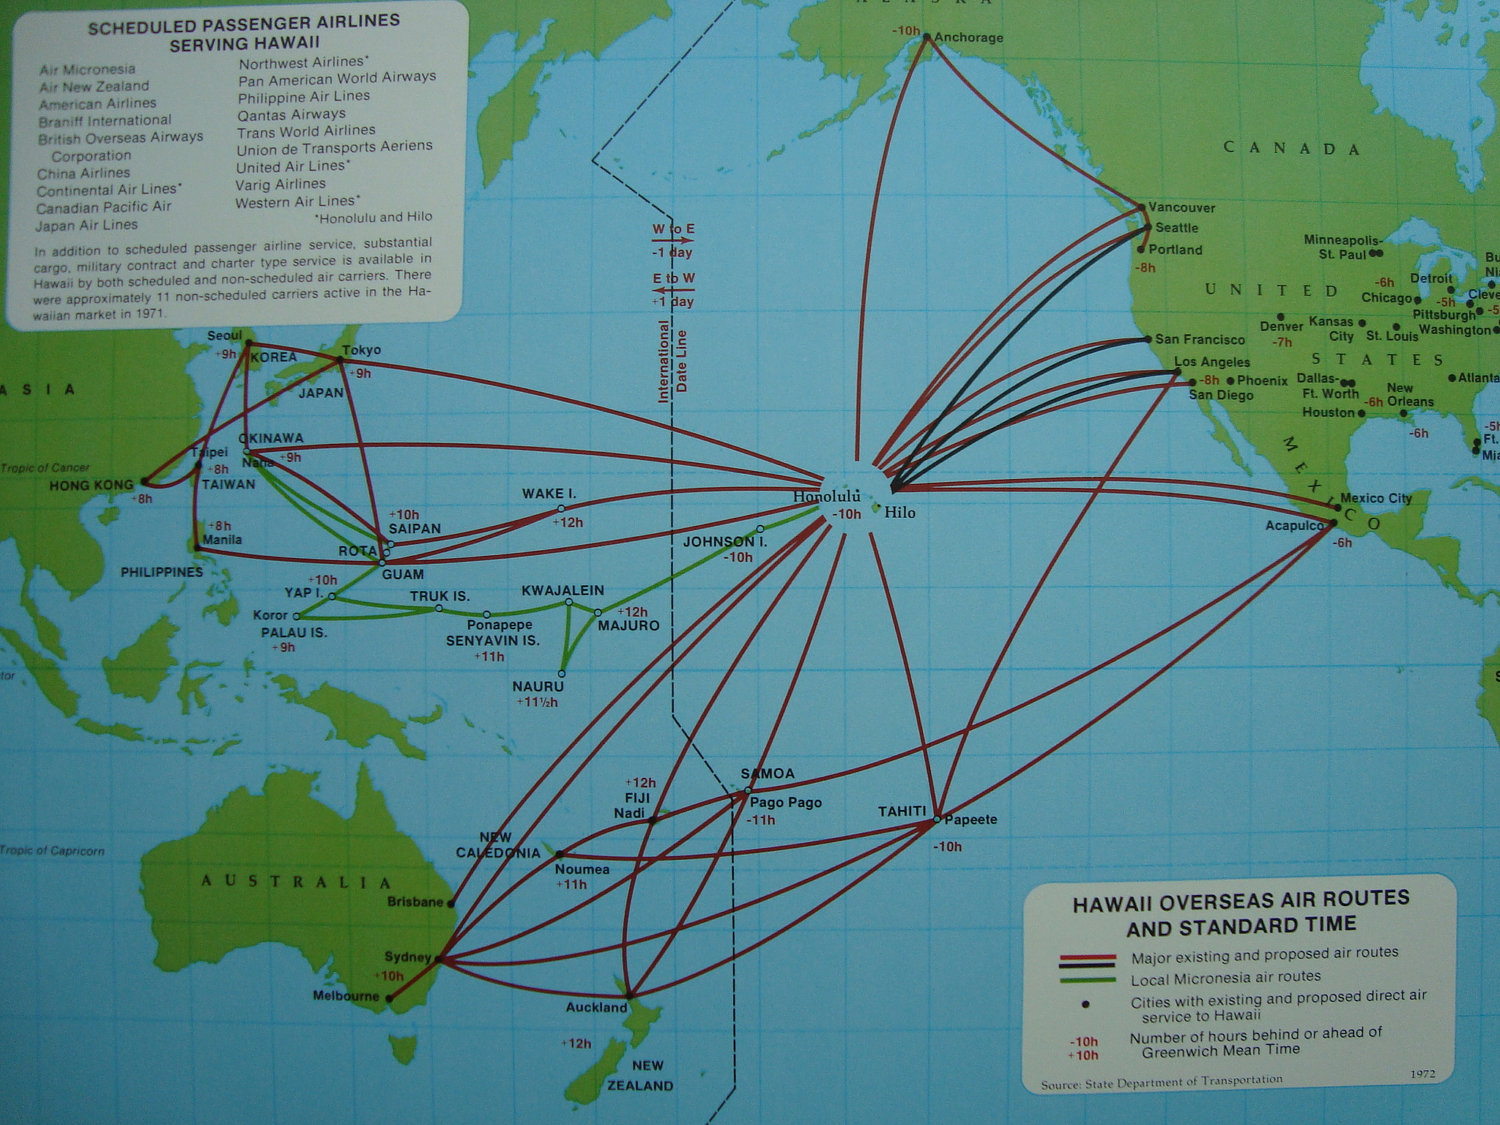 the timetablist: scheduled passenger routes from hawaii, 1971: east